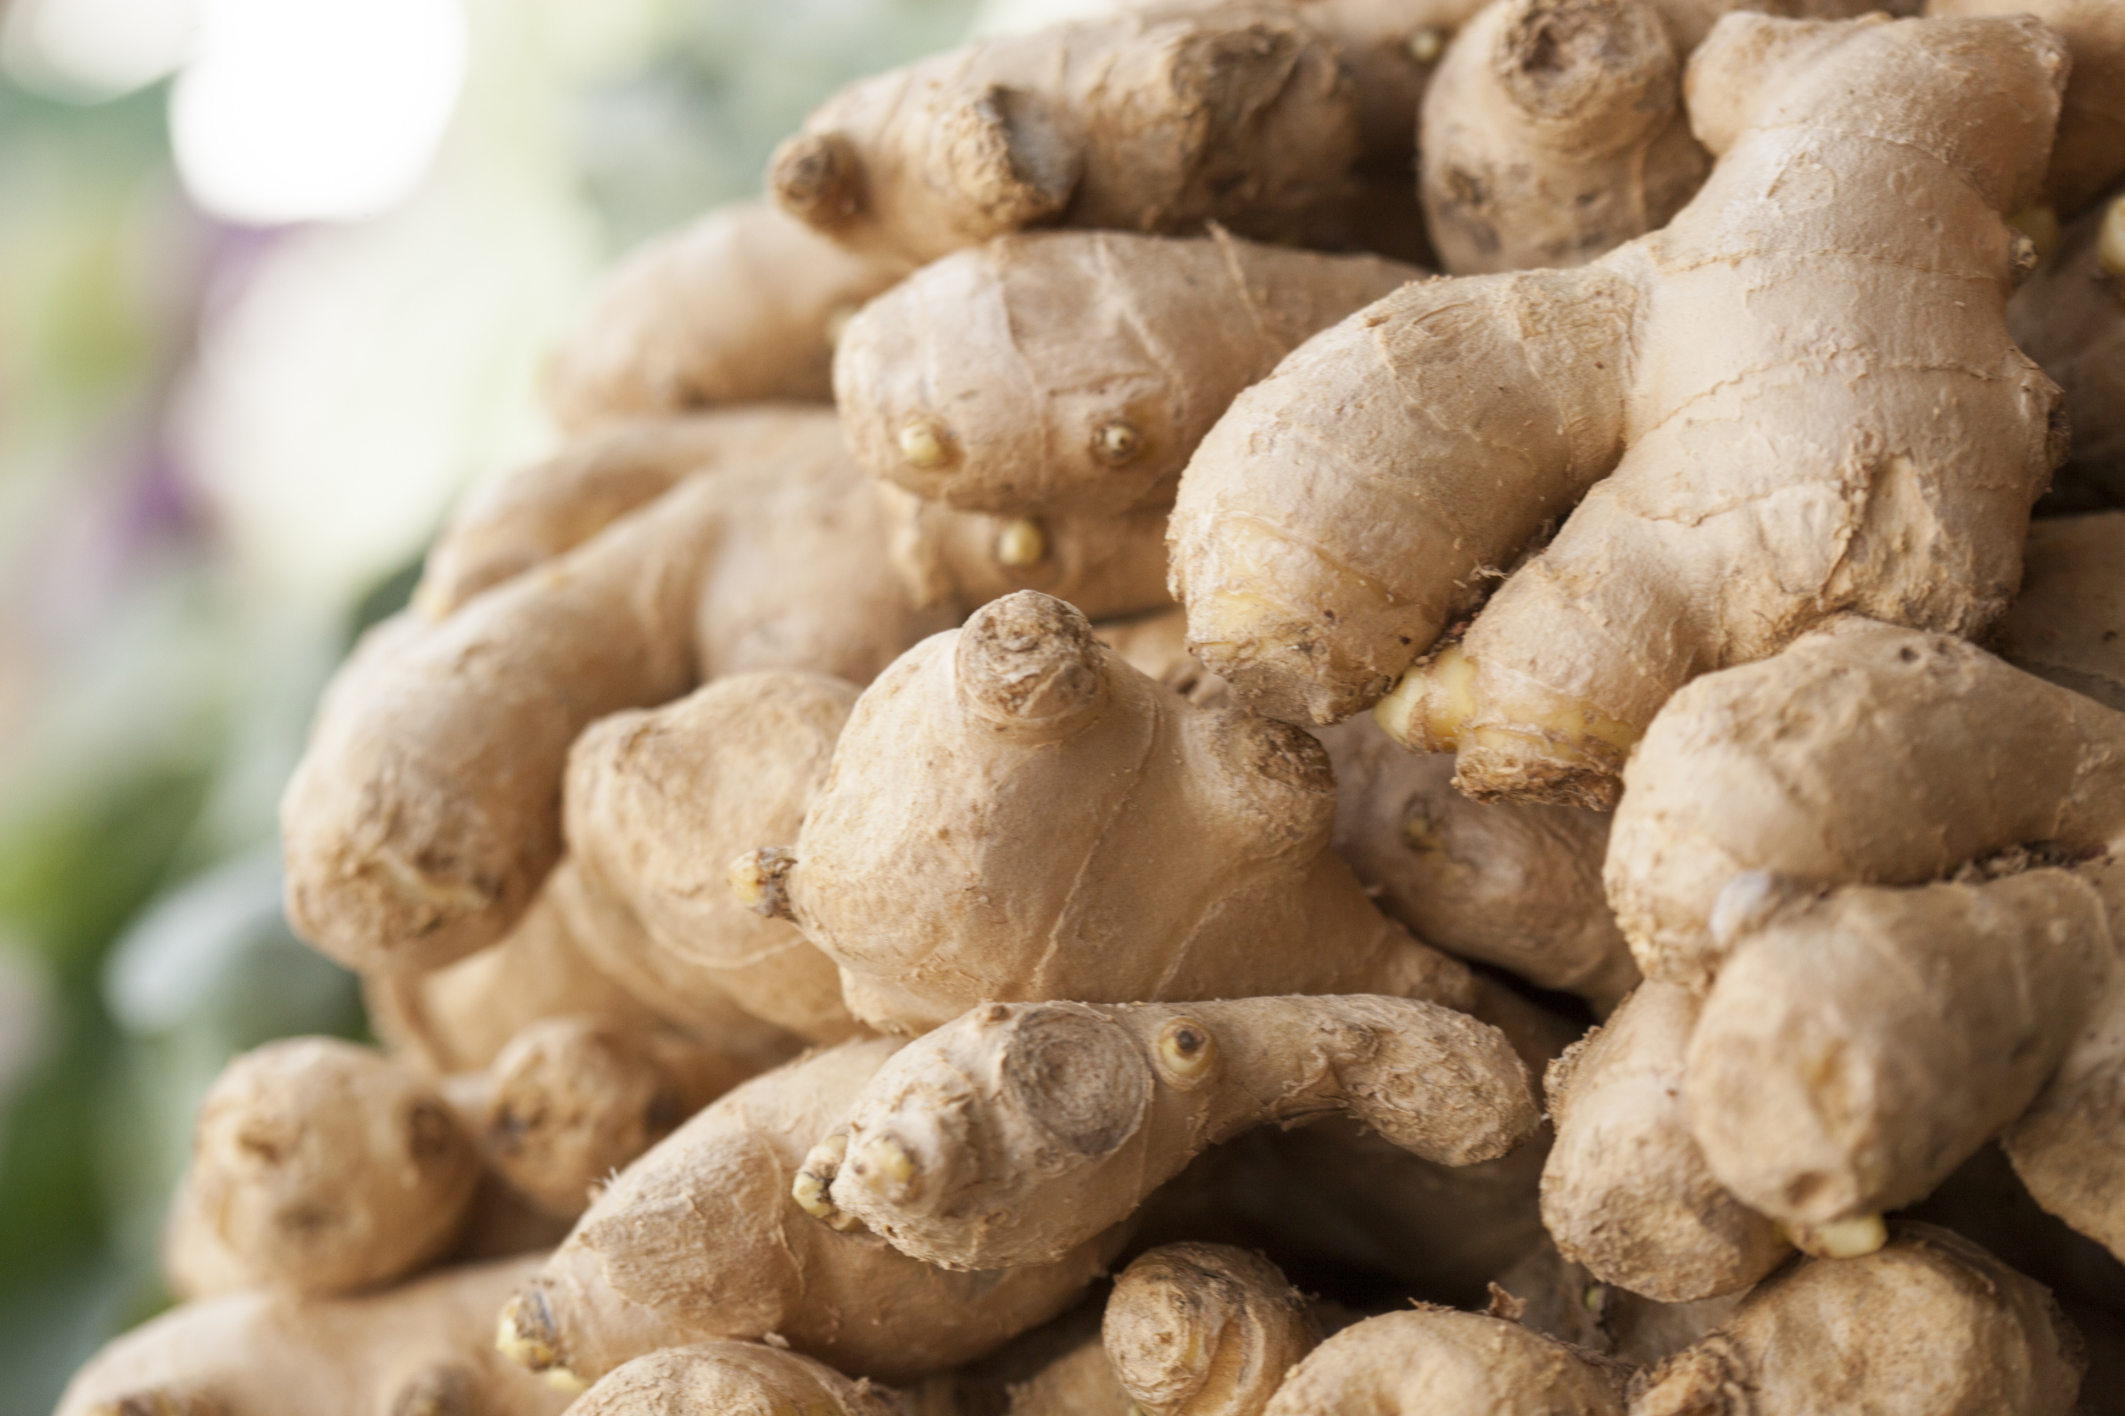 Does Ginger Make Urine Darker?